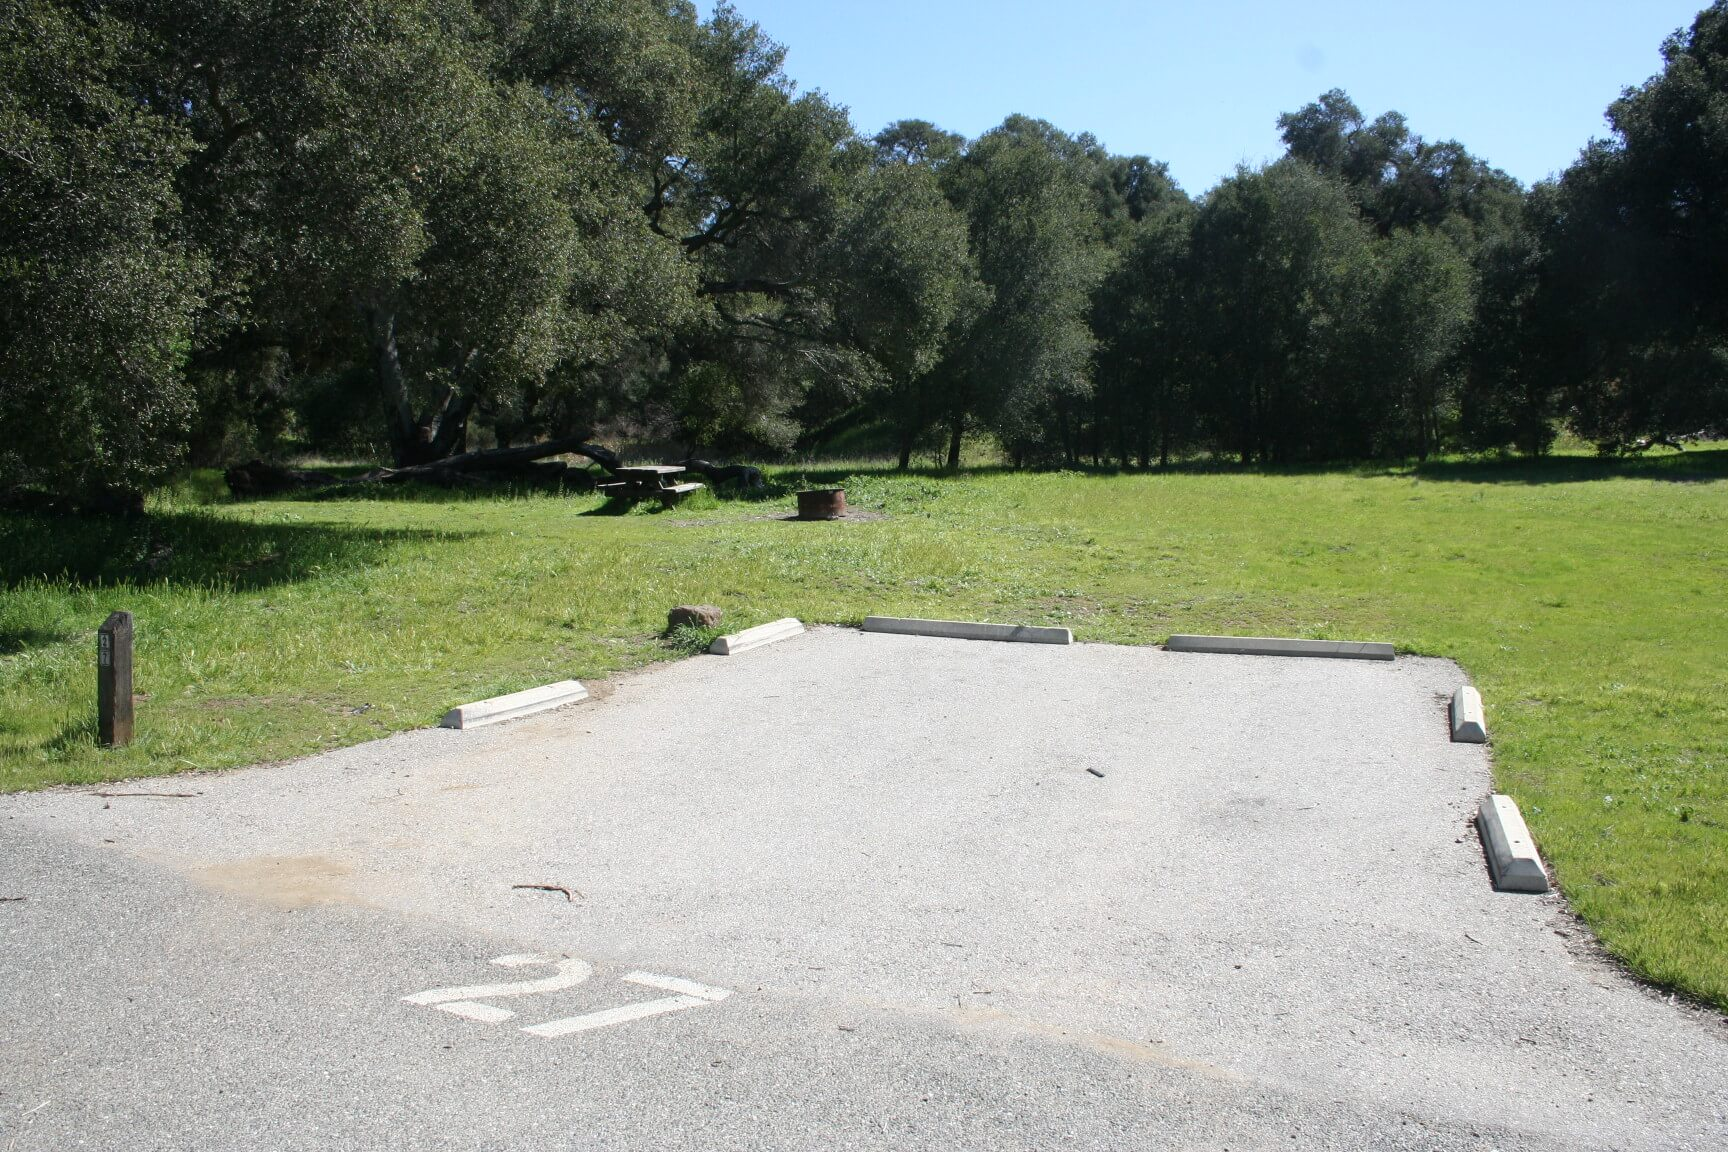 Leo Carrillo & Malibu Creek Campgrounds Are Now Open For Camping - Malibu Creek #27 Before Fire